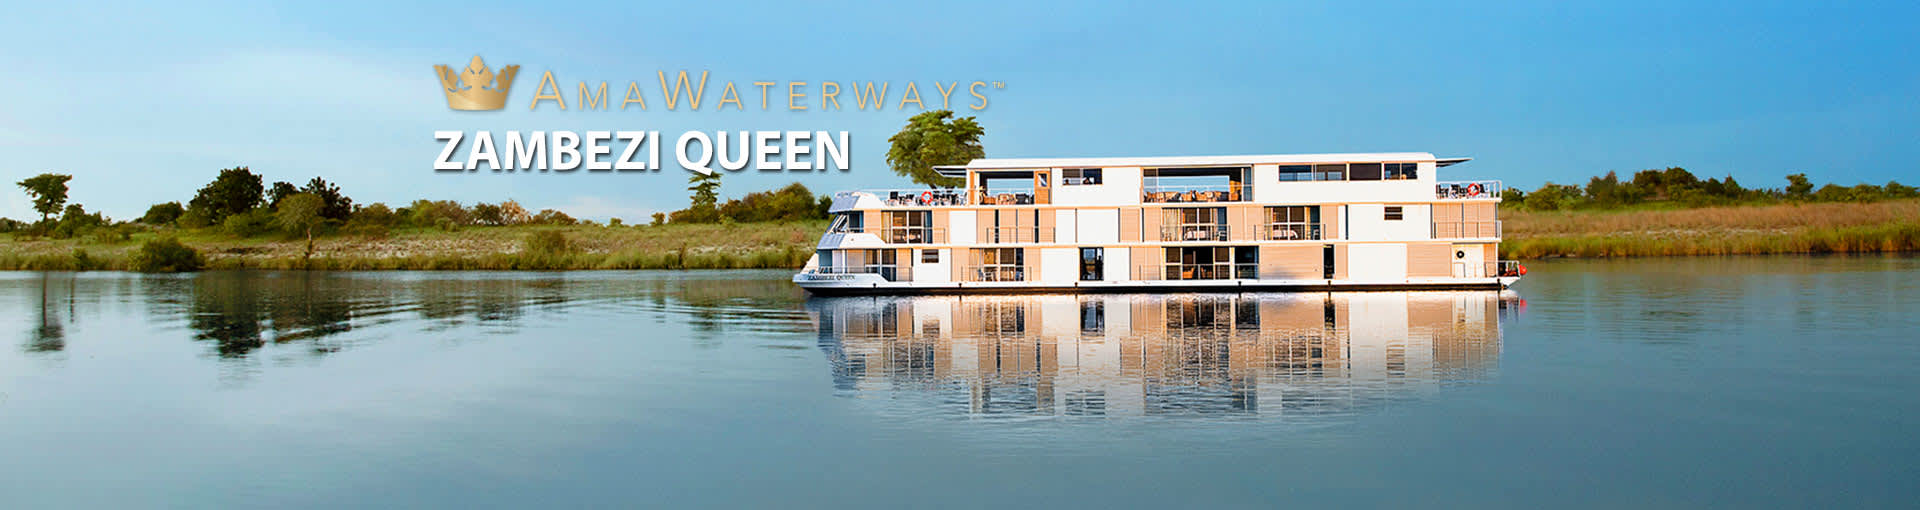 AmaWaterways - Zambezi Queen